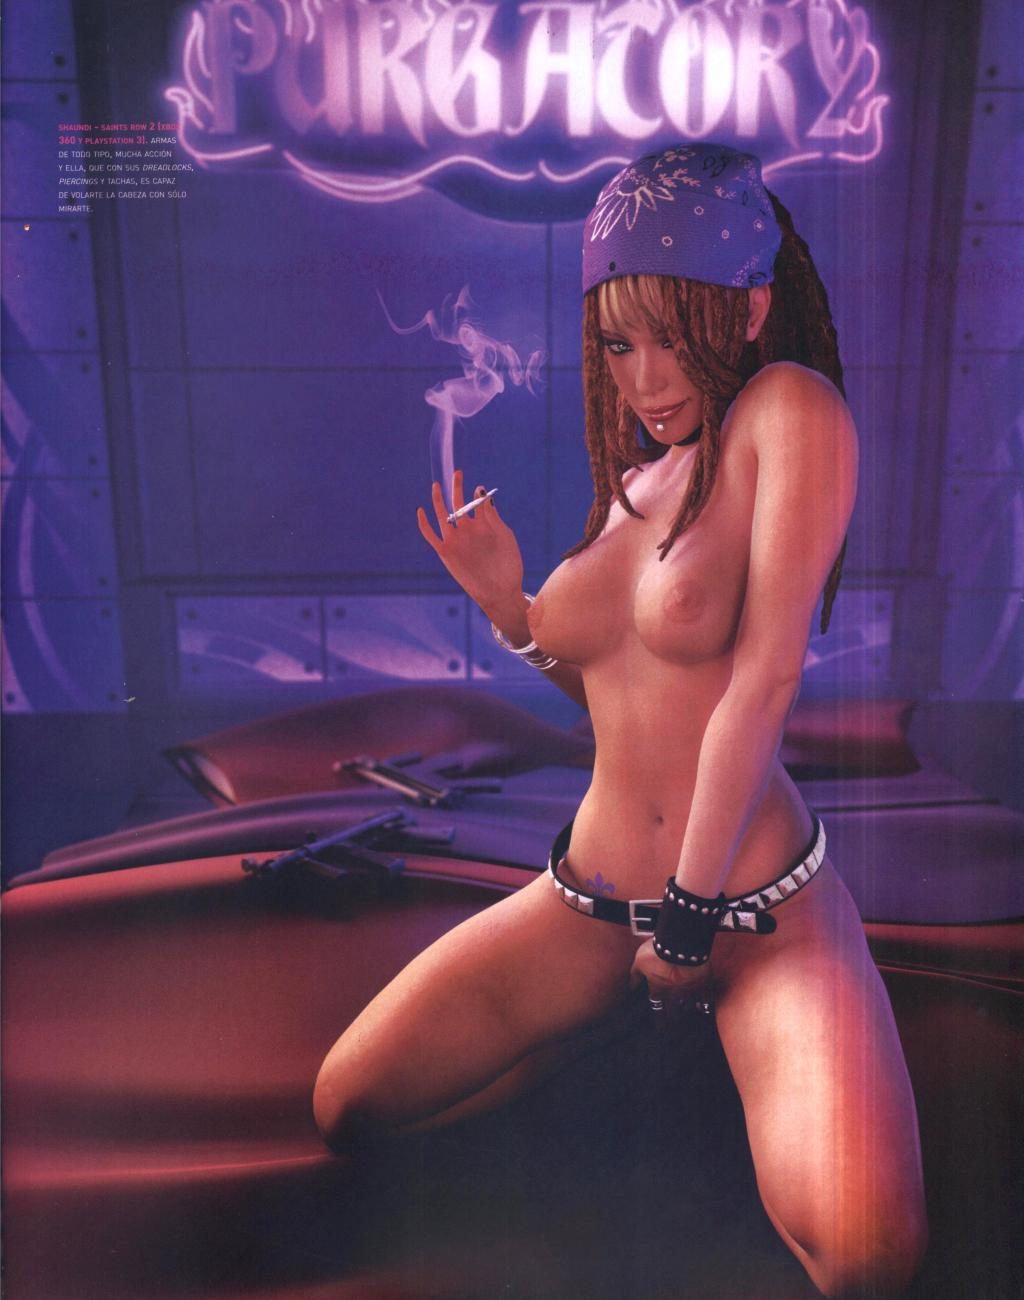 Saints row 4 sexy nude cosplay hentai pornstar